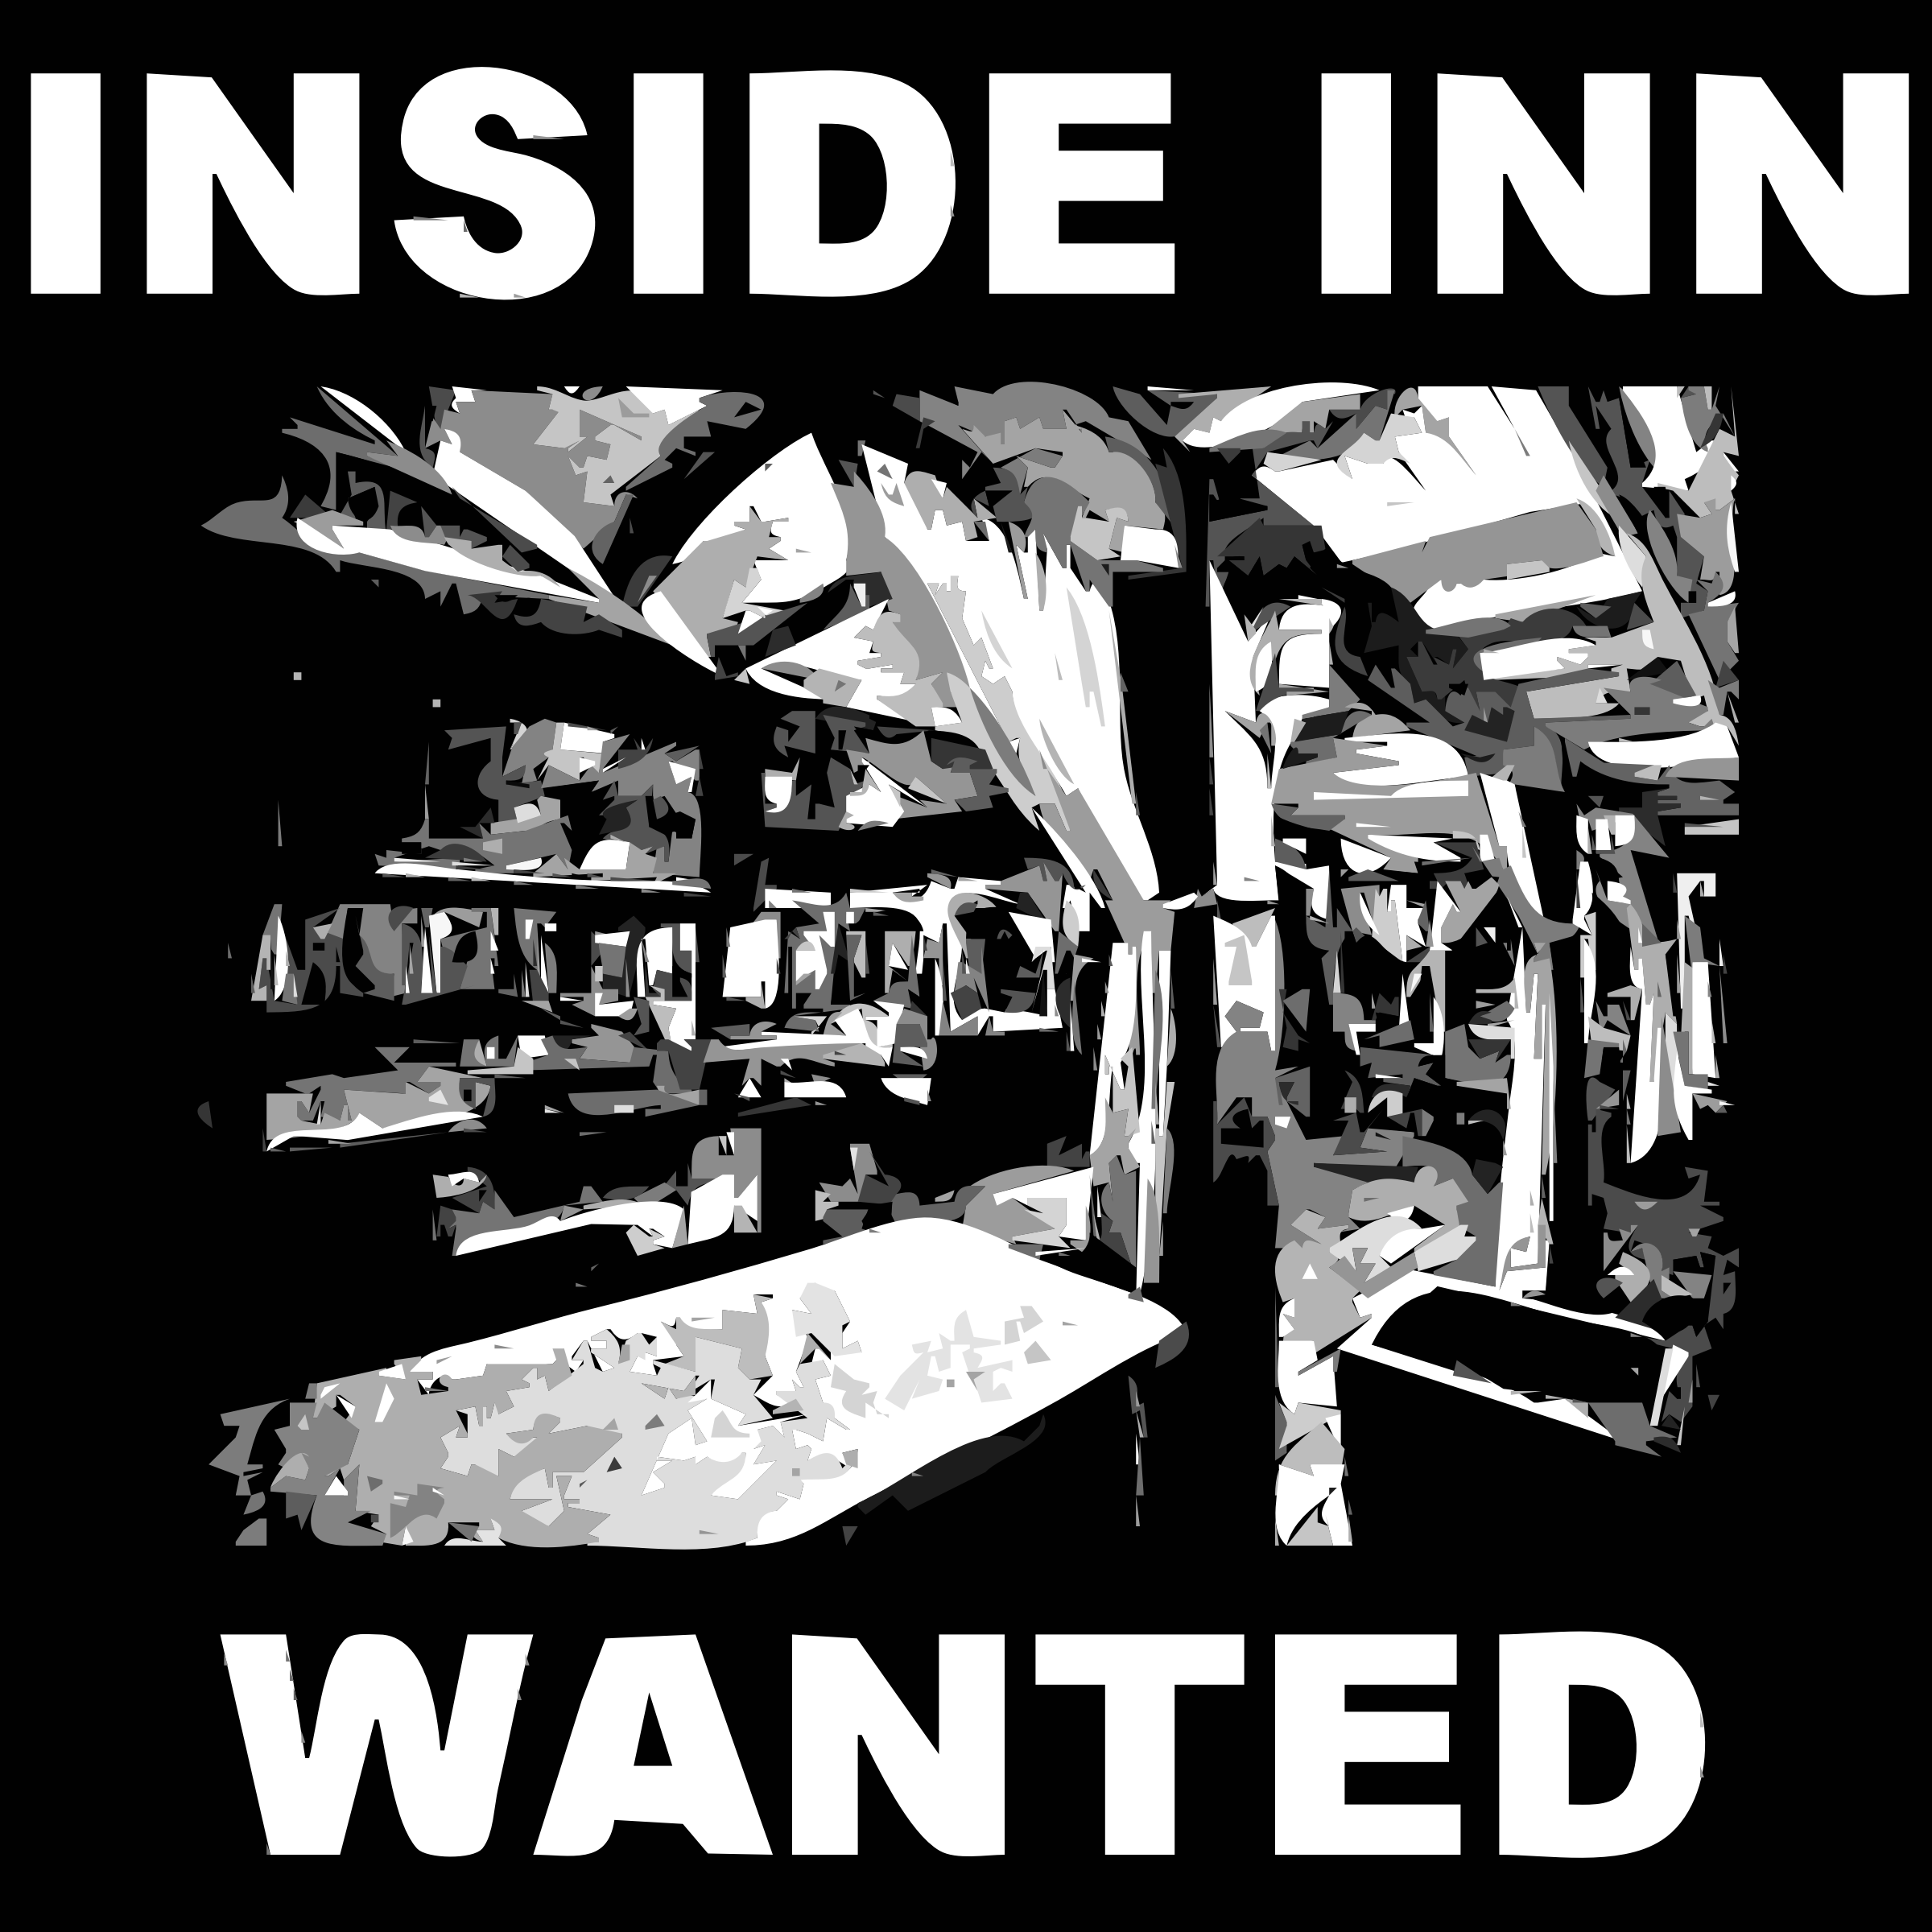 [request] Scenery 11 - INSIDE INN by speedstar